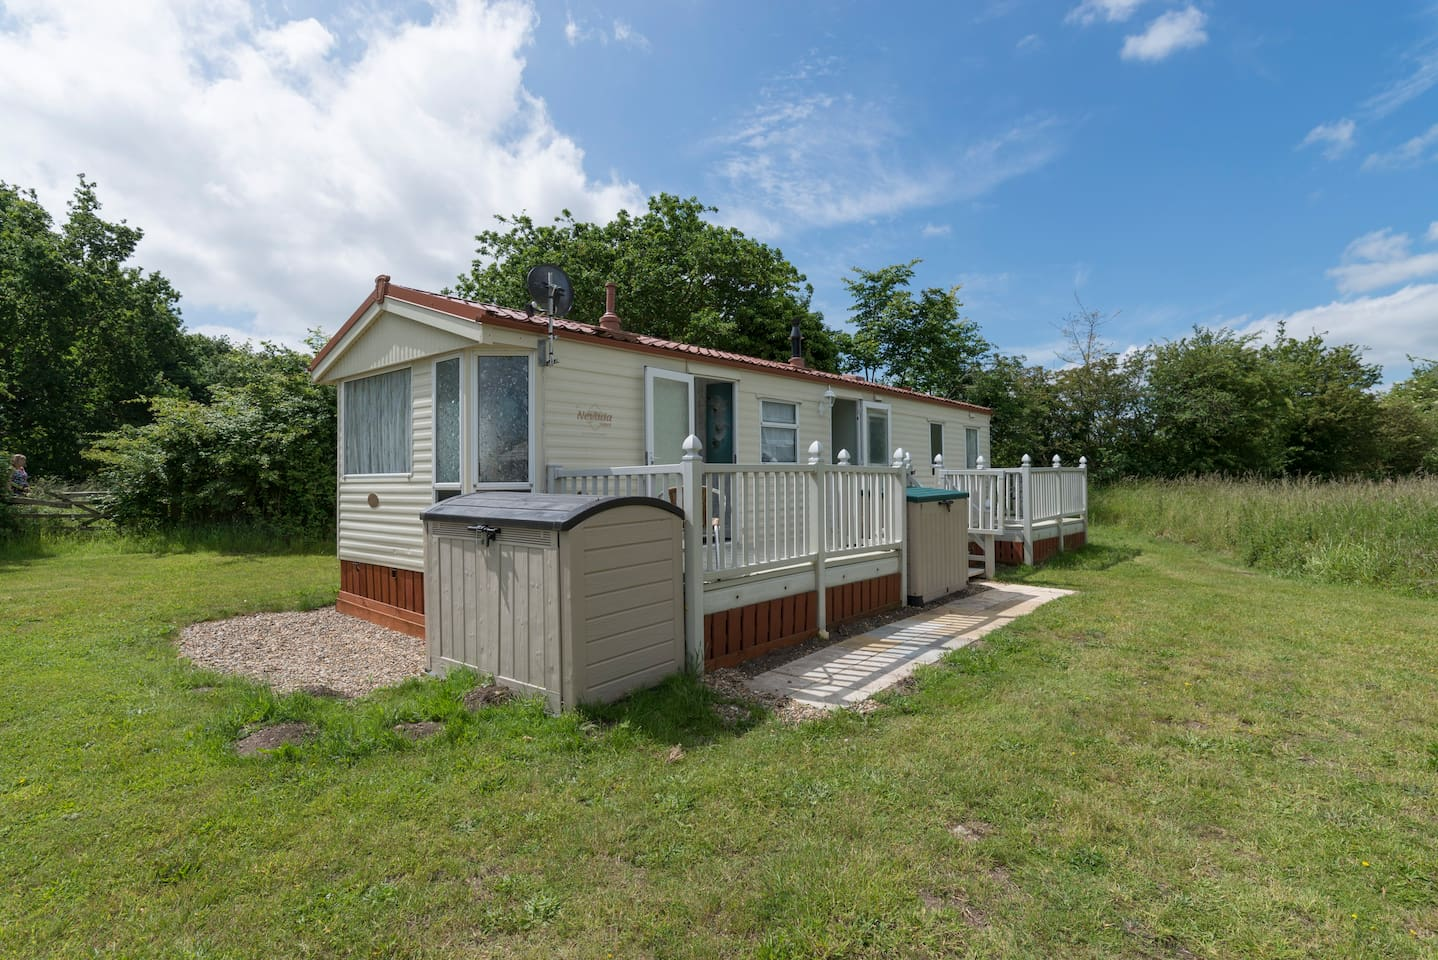 Mole End - up to 6 berth caravan, newly refurbished, delighful surroundings, based in Broadlands Park and Marina.